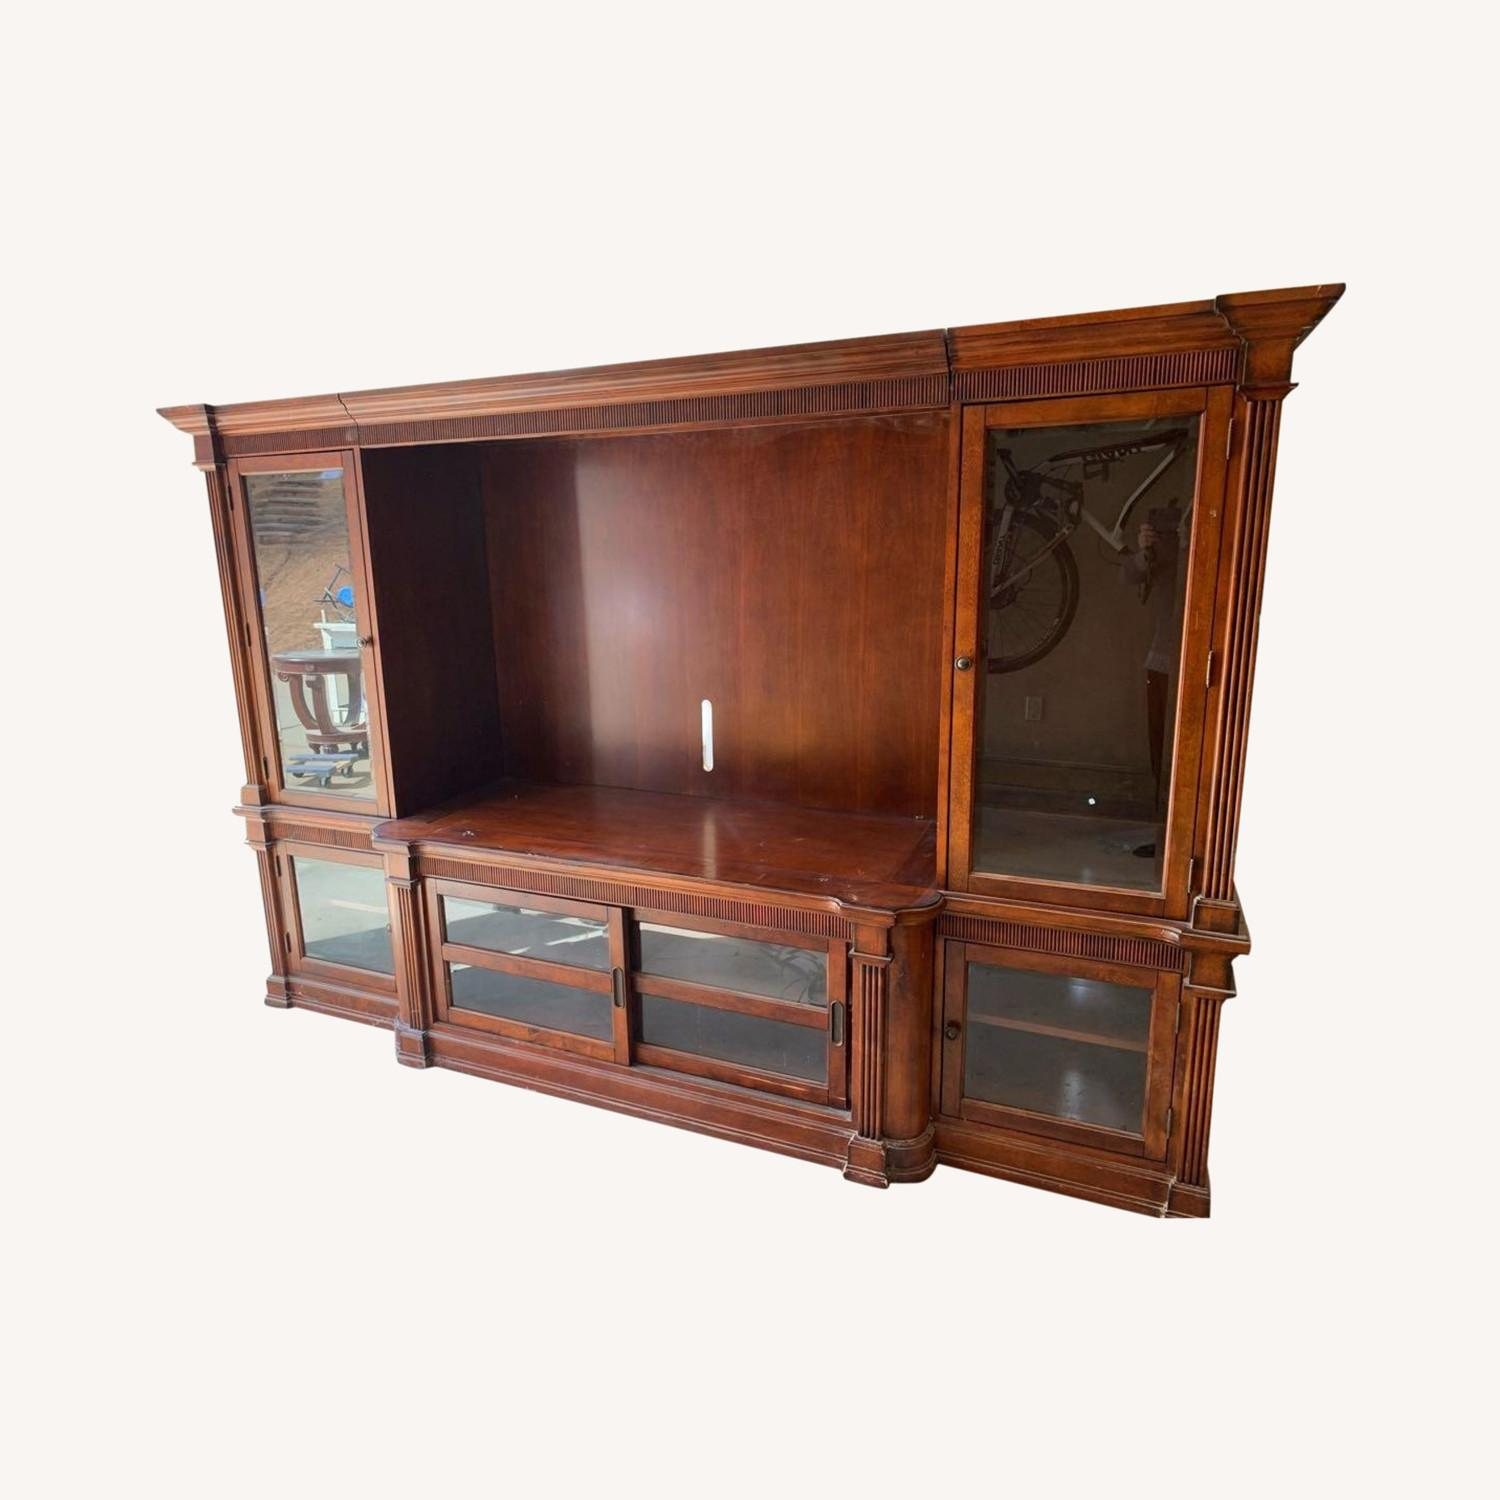 Basset John Elway Entertainment Center Wall Unit - image-0